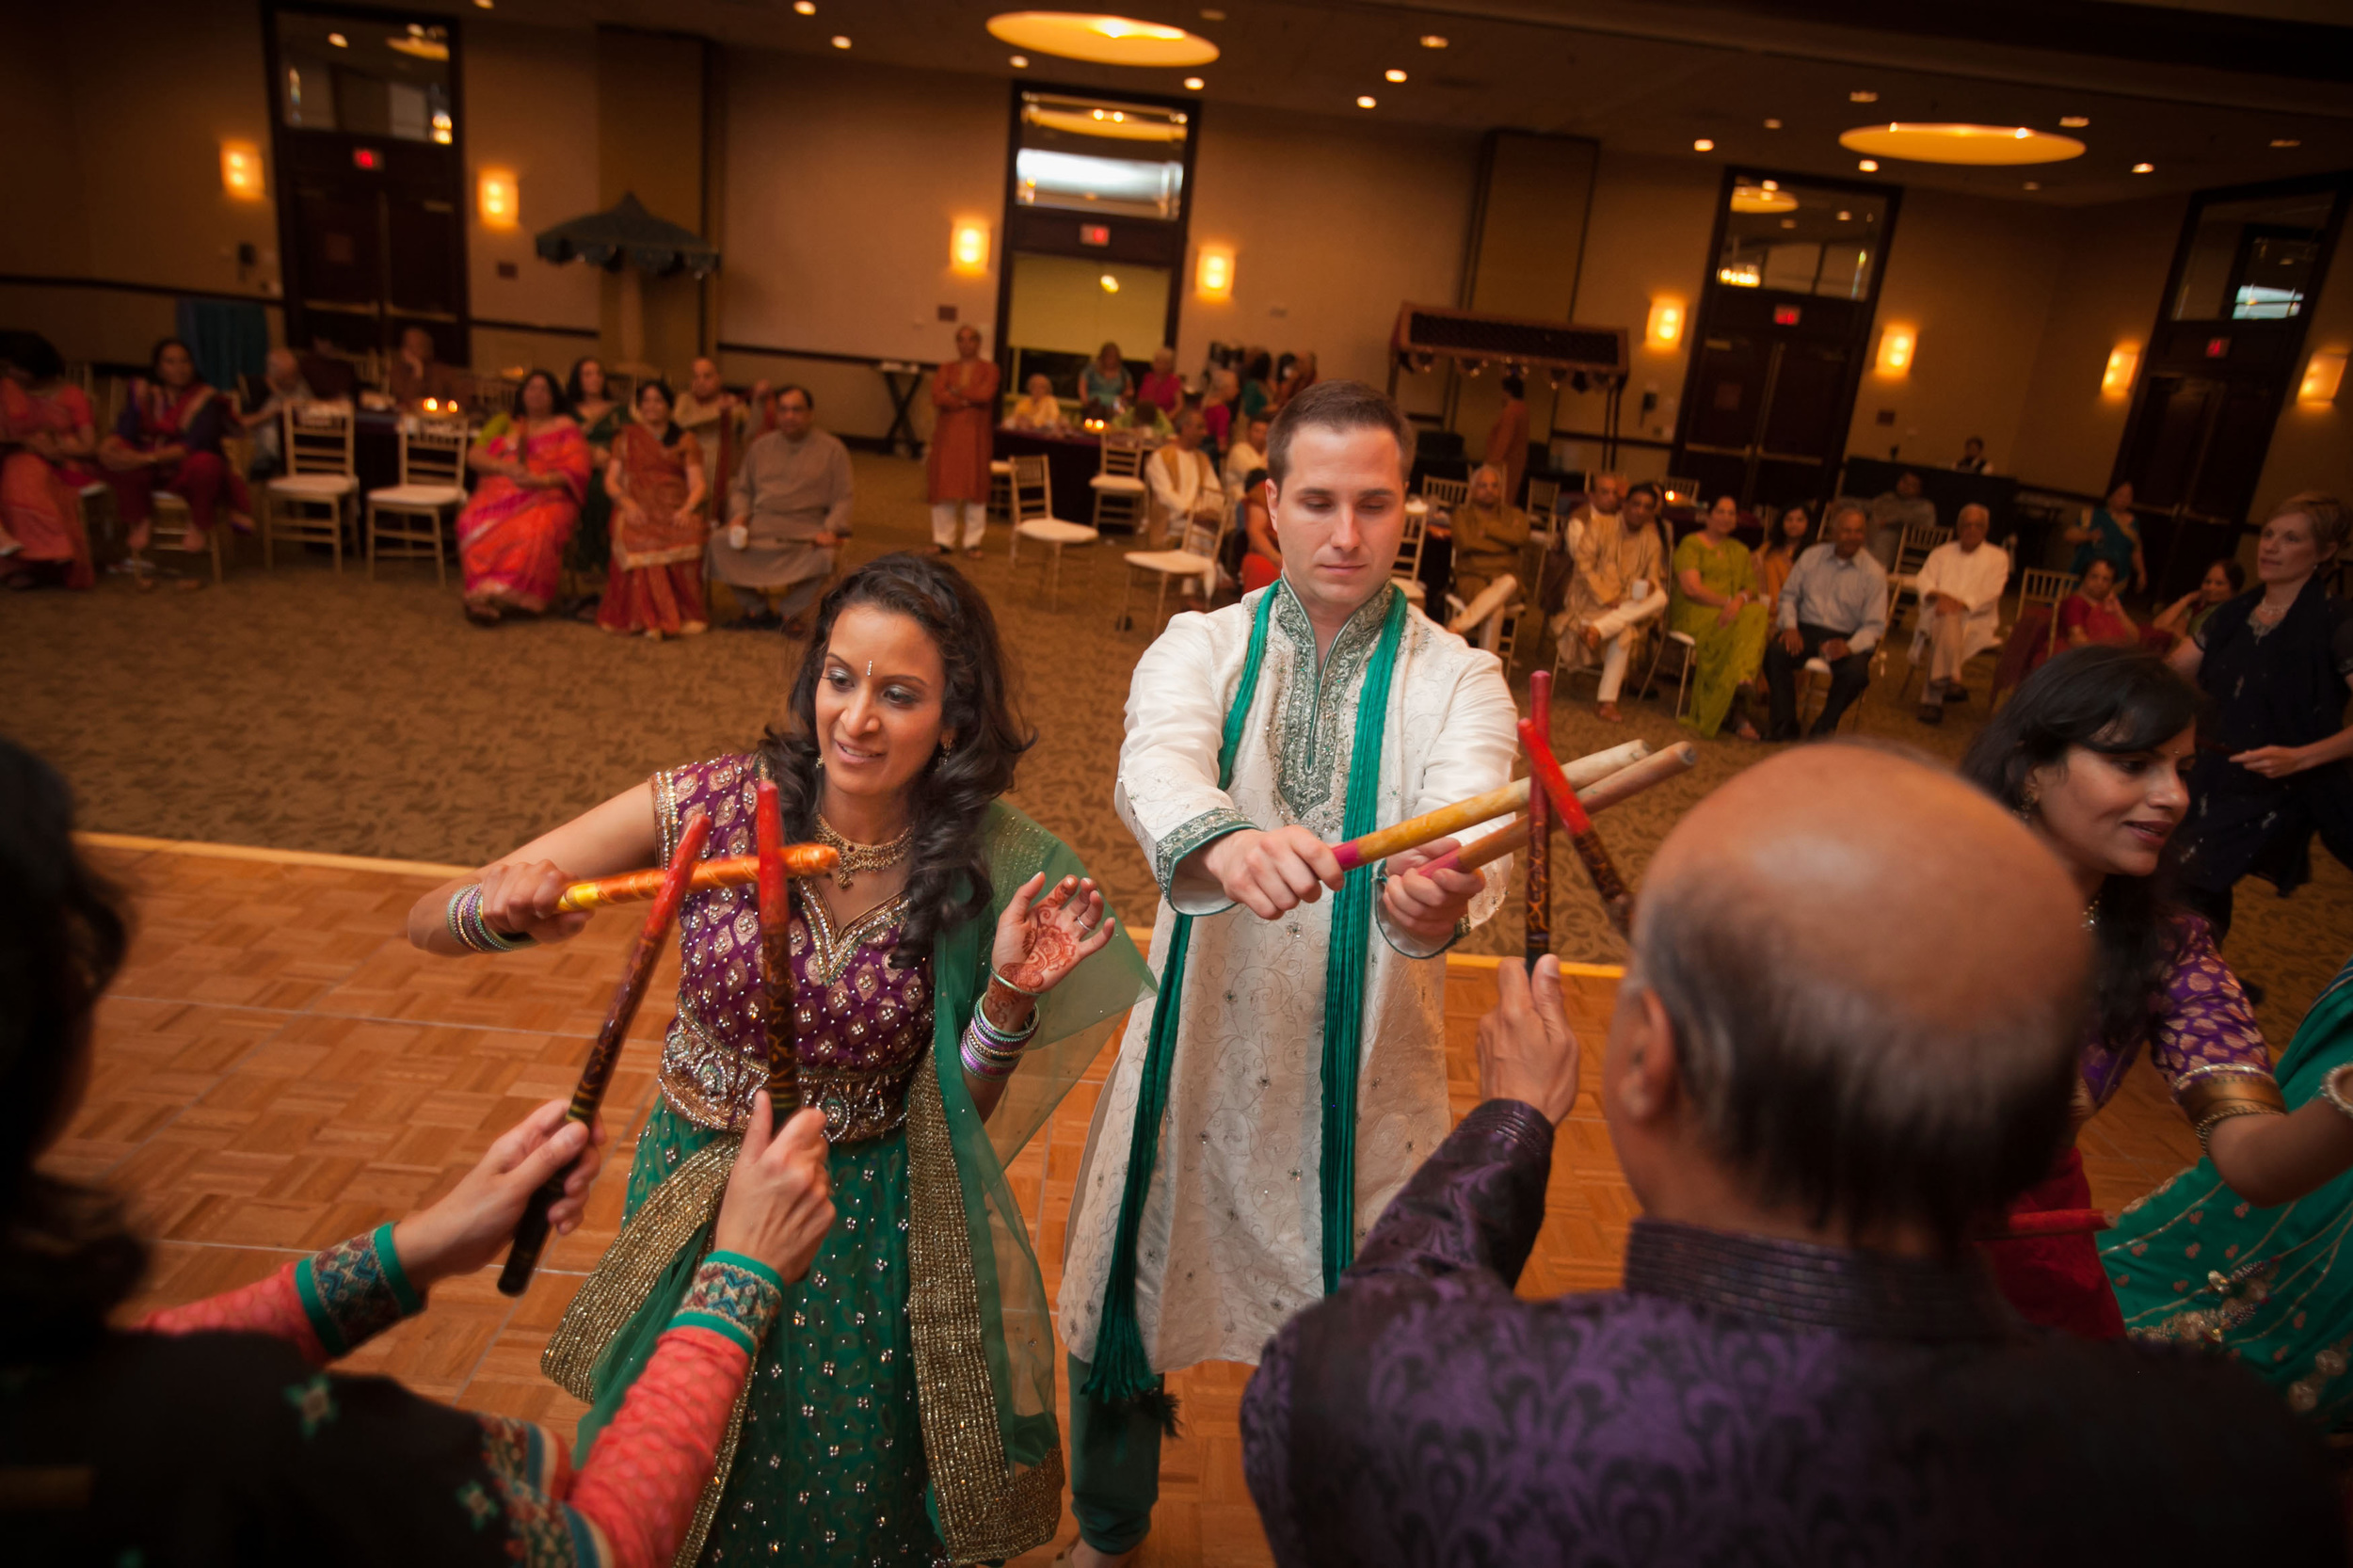 Aditi and Matt during the Raas portion of the evening